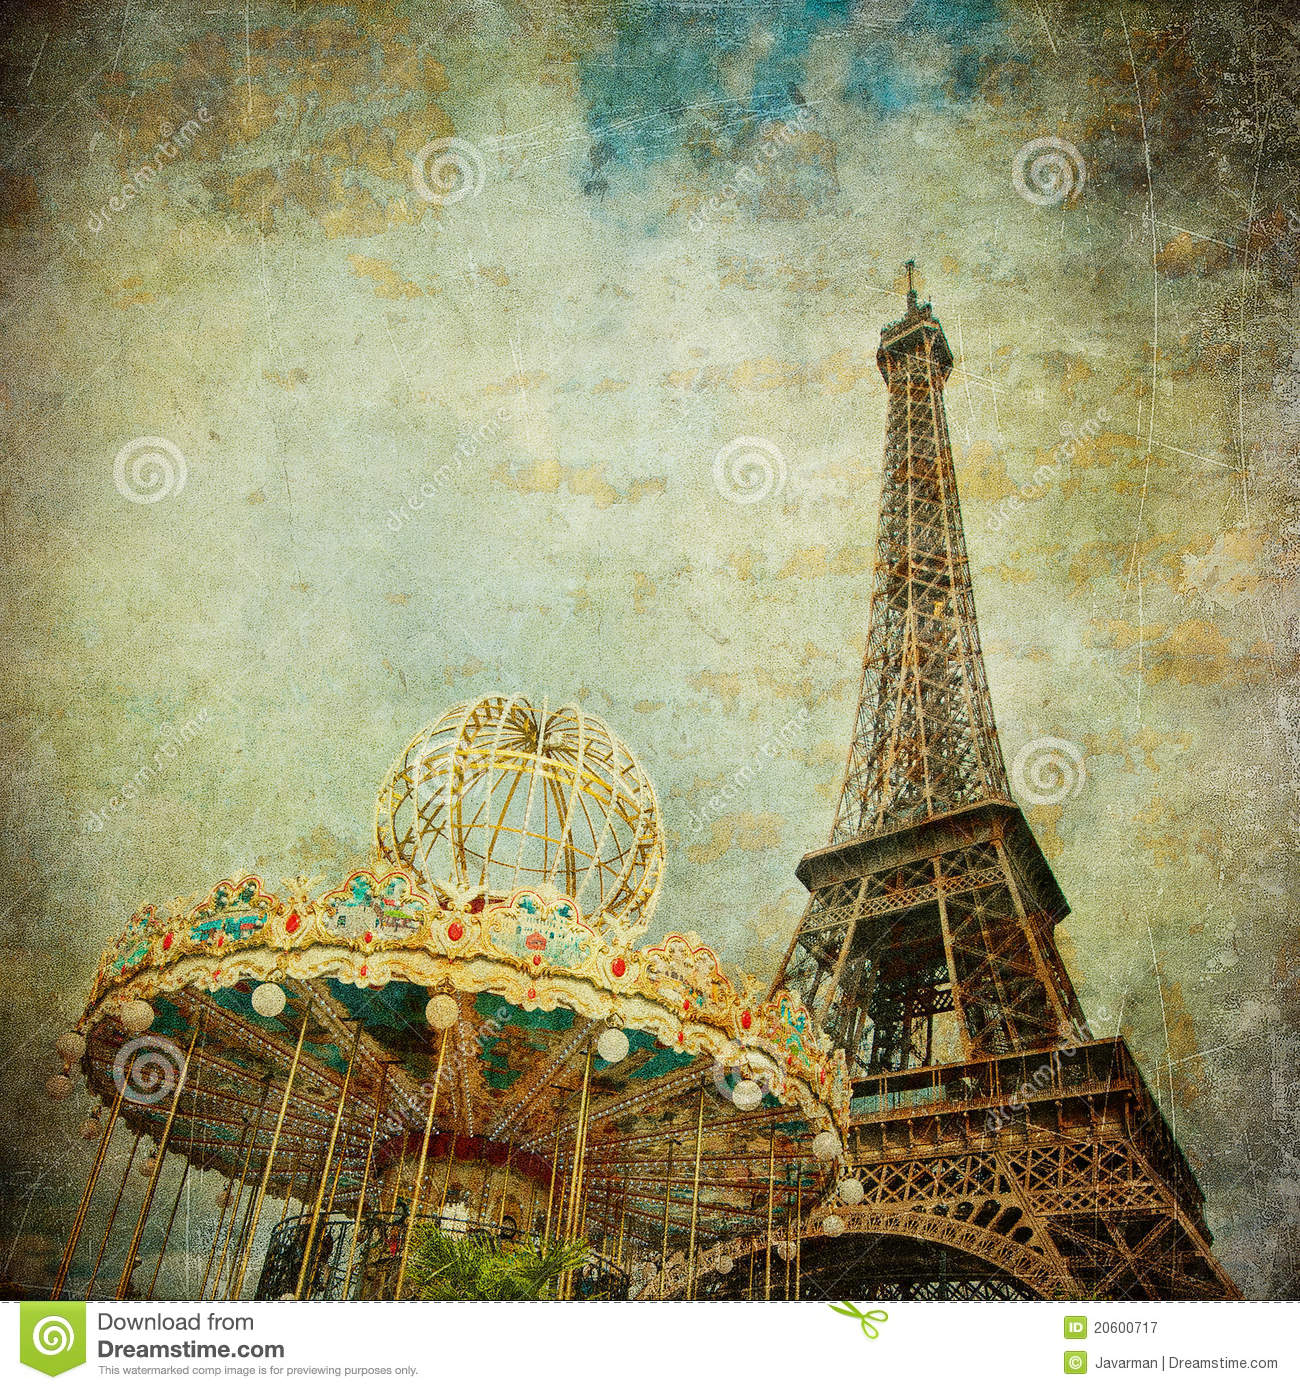 vintage image of eiffel tower paris stock image image of city landmark 20600717. Black Bedroom Furniture Sets. Home Design Ideas